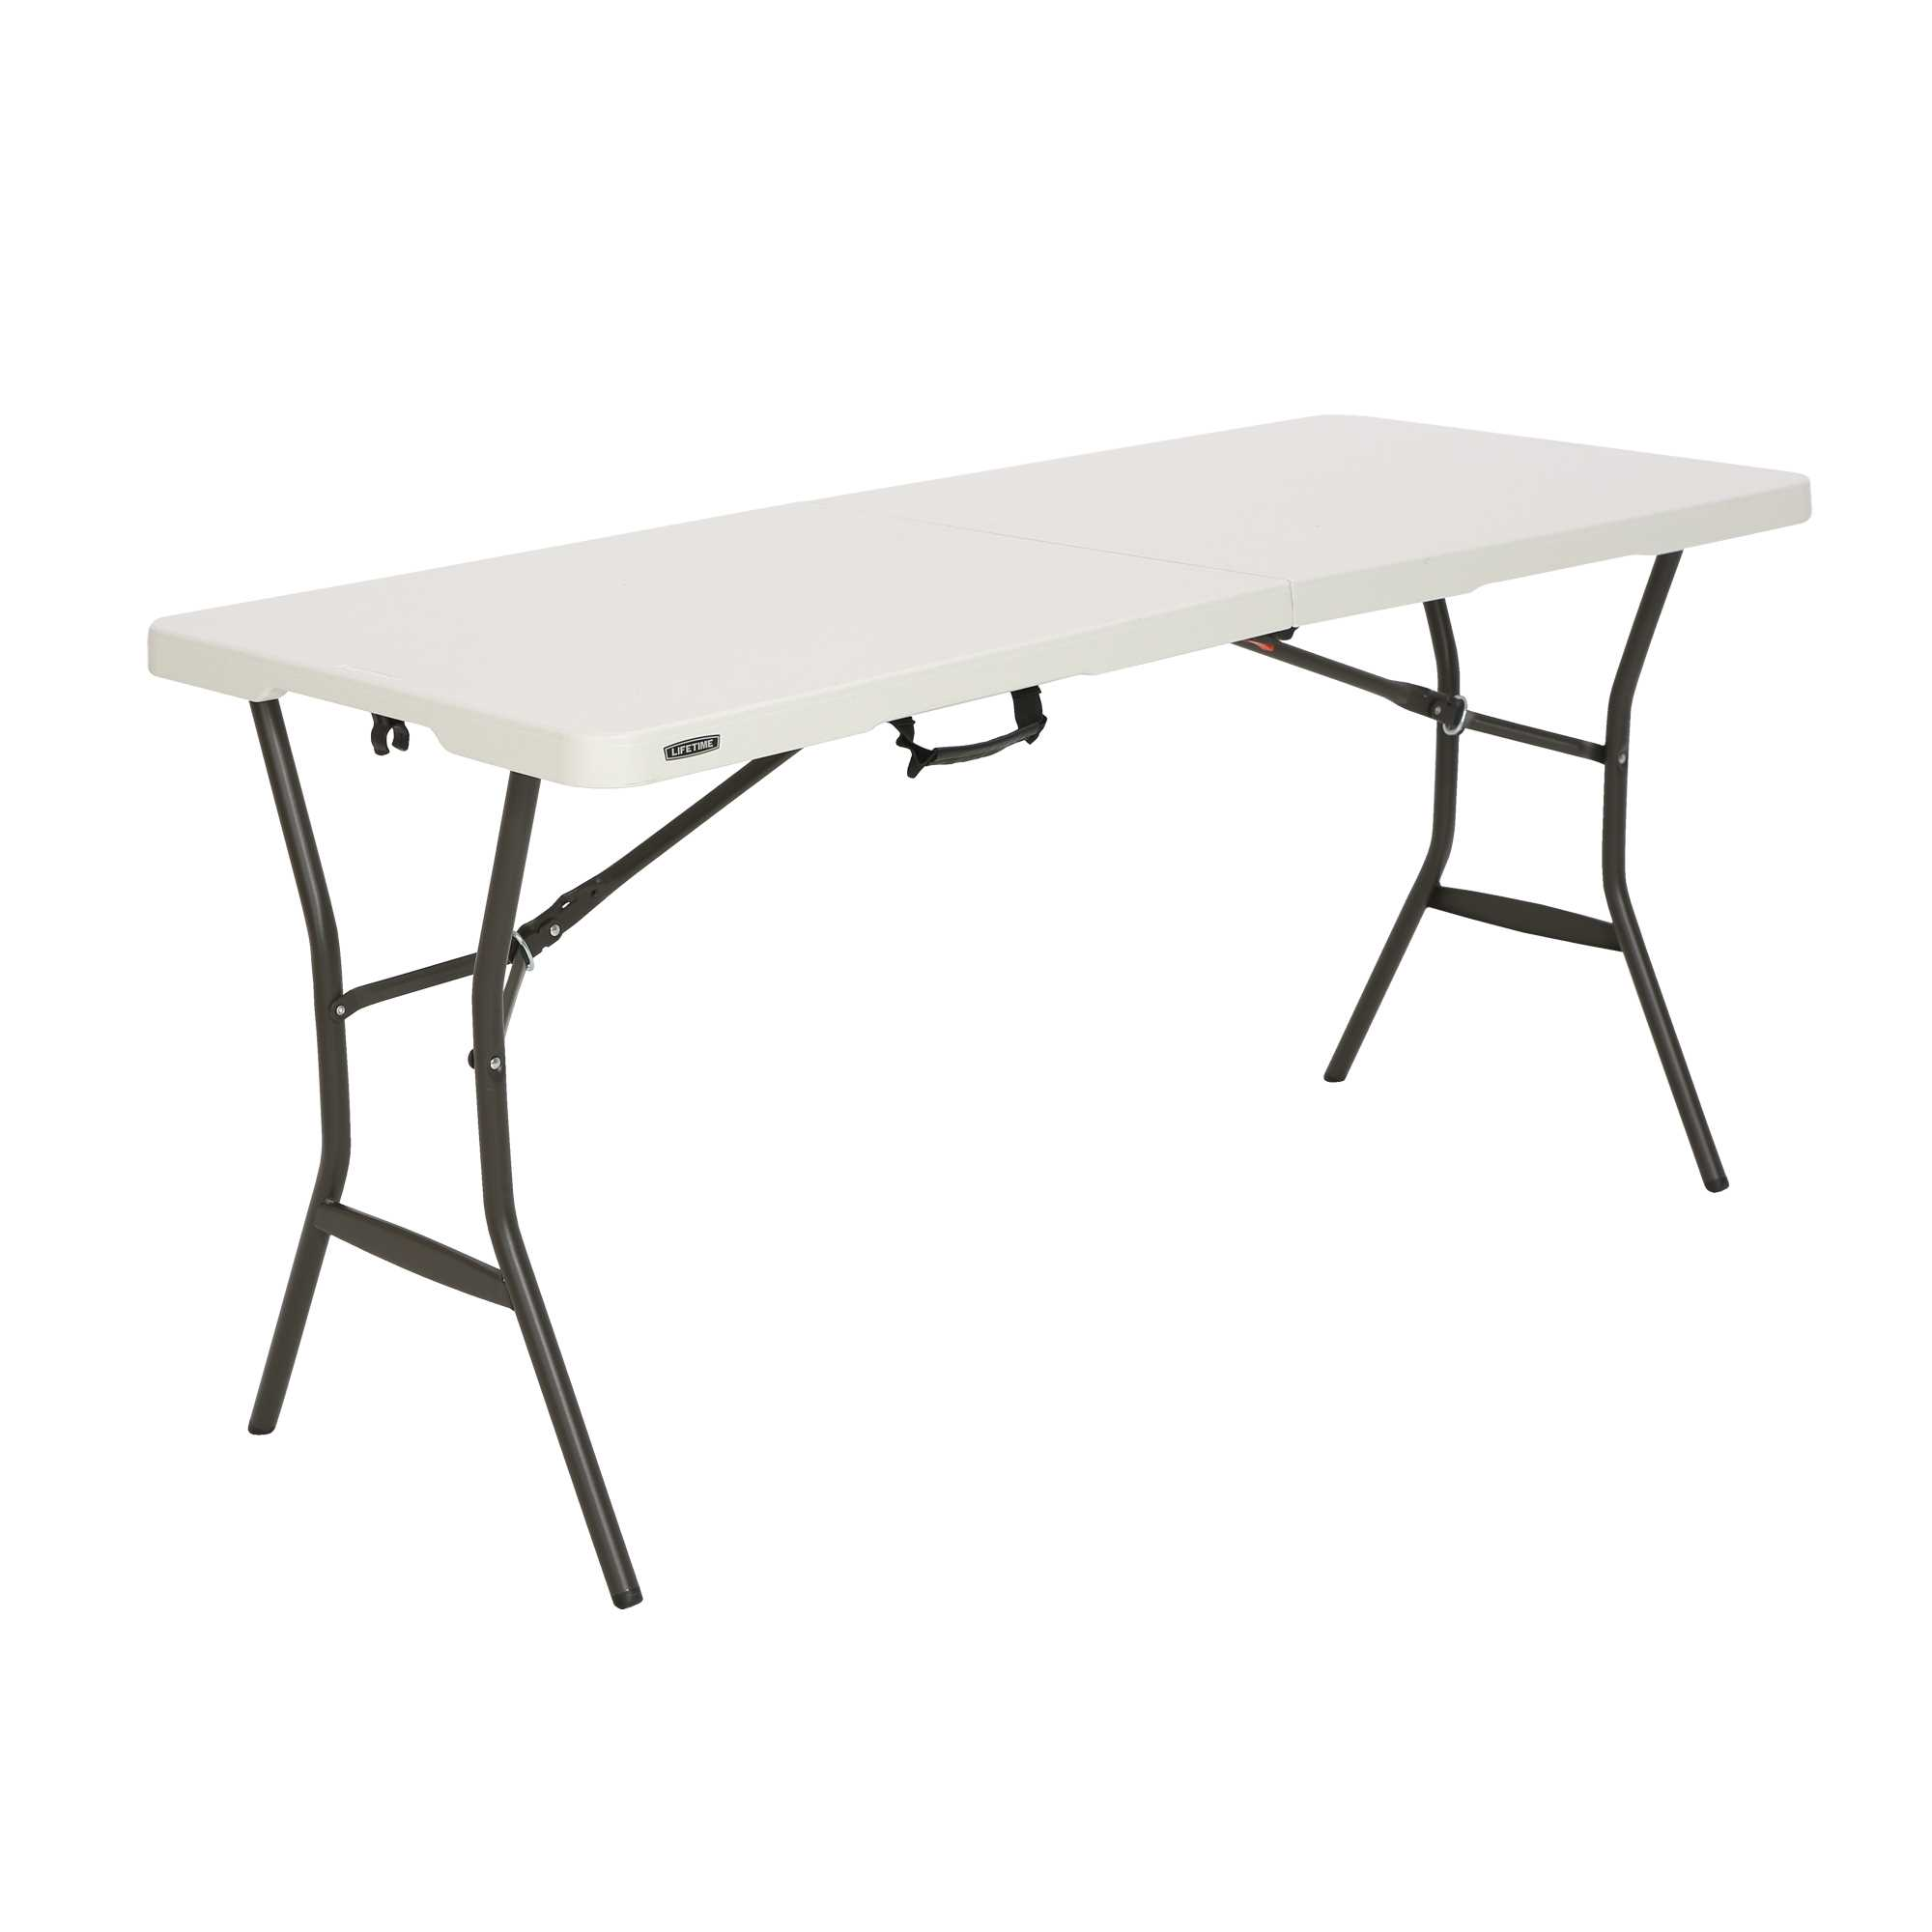 outdoor plastic tables Active Office Furniture lifetime 5 essential fold in half table pearl 280513